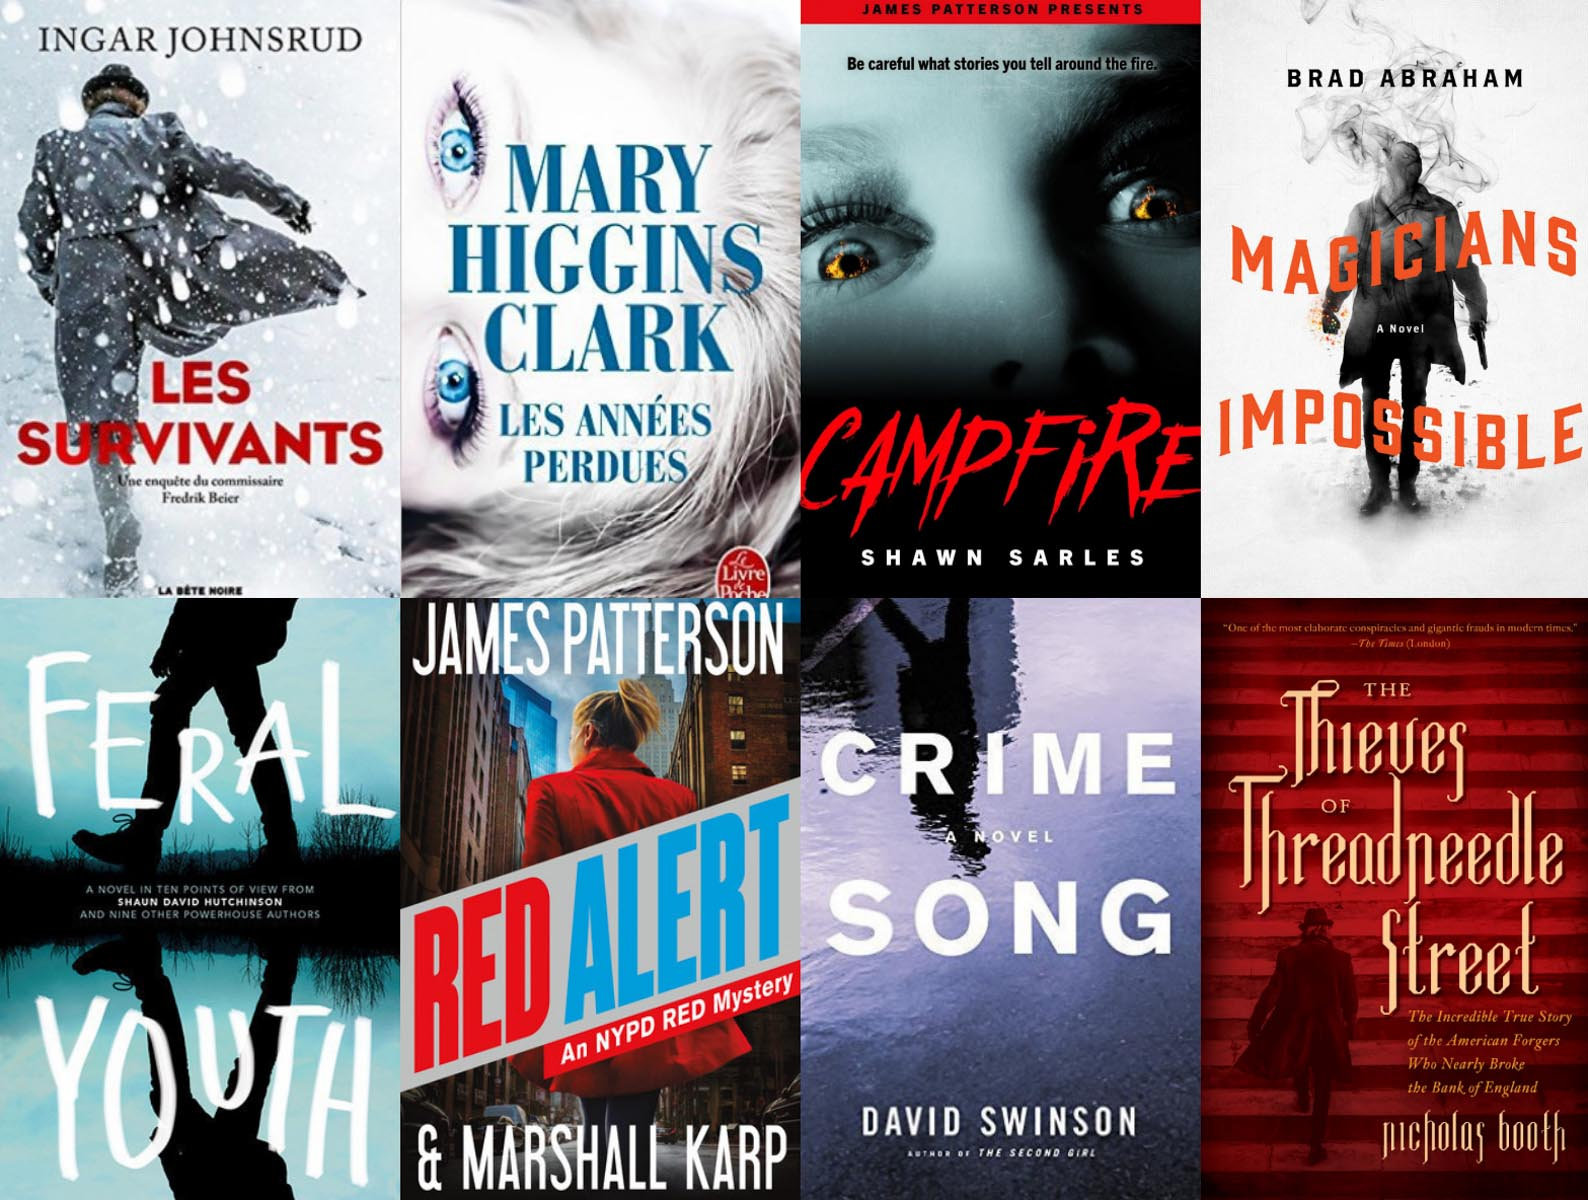 Eight book covers by Christie Goodwin